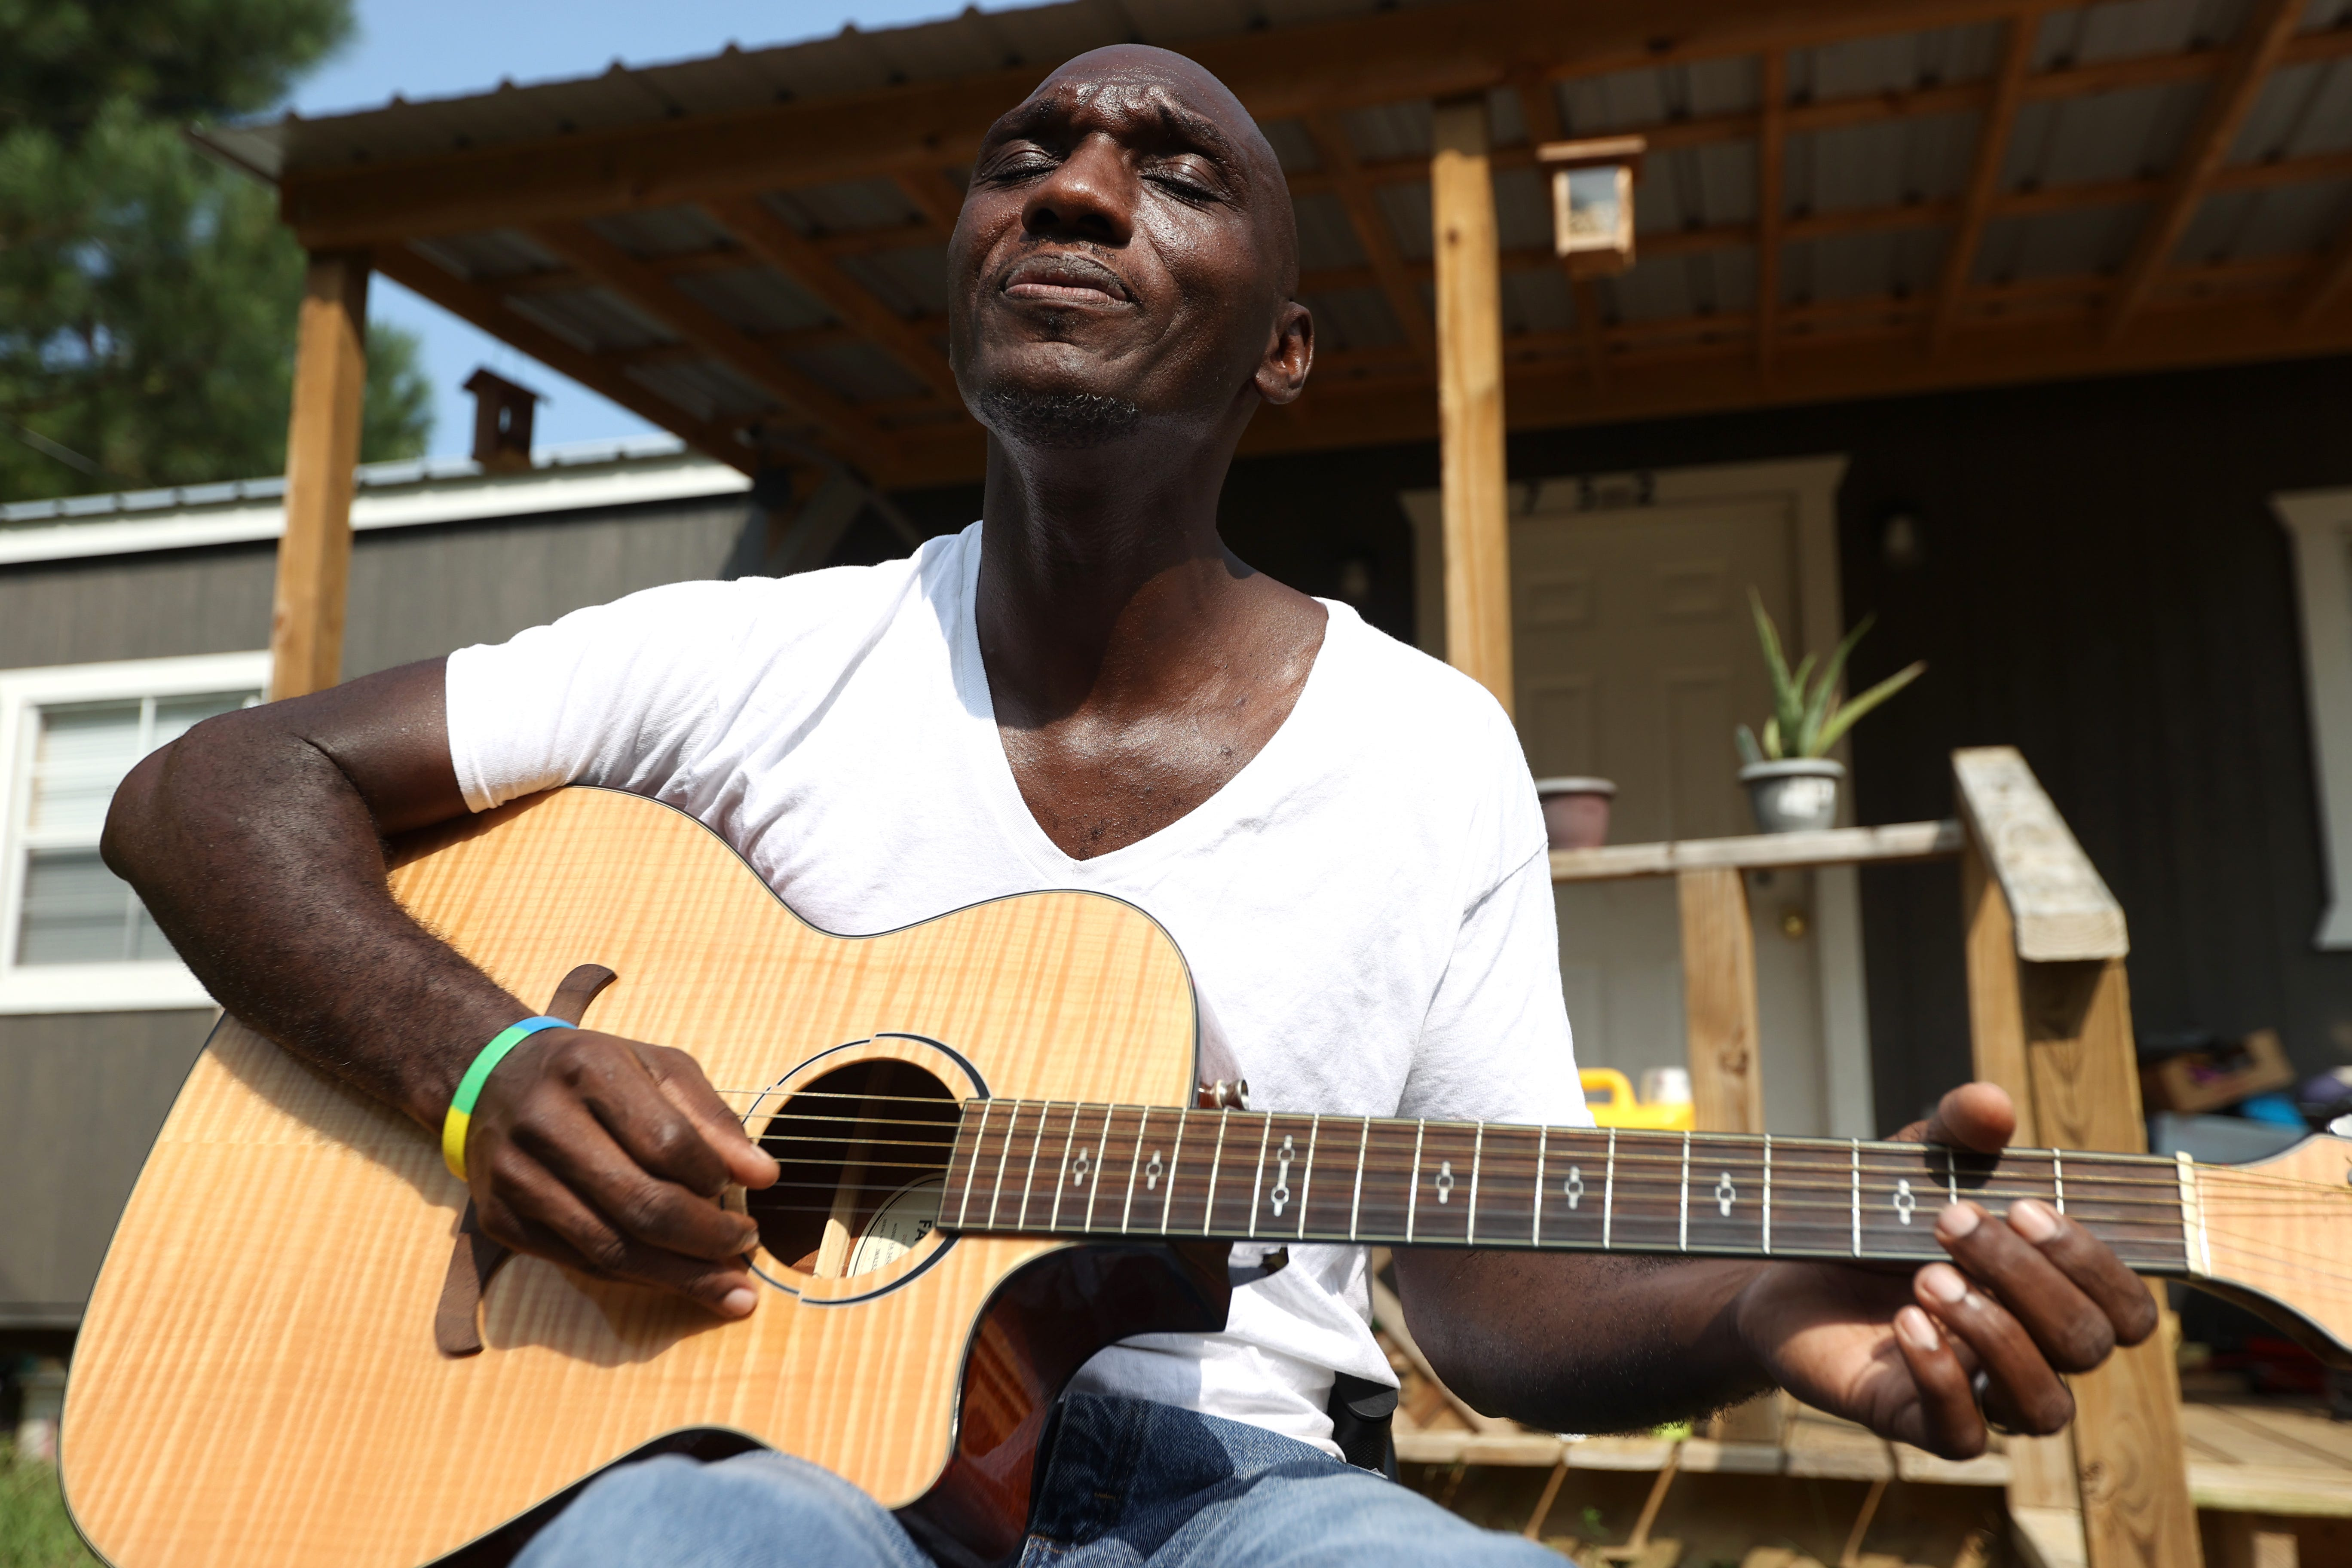 Cedric Burnside, a third-generation hill country blues artist, outside of his Ashland, Mississippi home on Tuesday, Sept. 15, 2020. Burnside, who has been playing professionally since he was 13-years-old, followed in the family footsteps of his drummer father Calvin Jackson and grandfather RL Burnside, whose music saw major success worldwide late in his career.